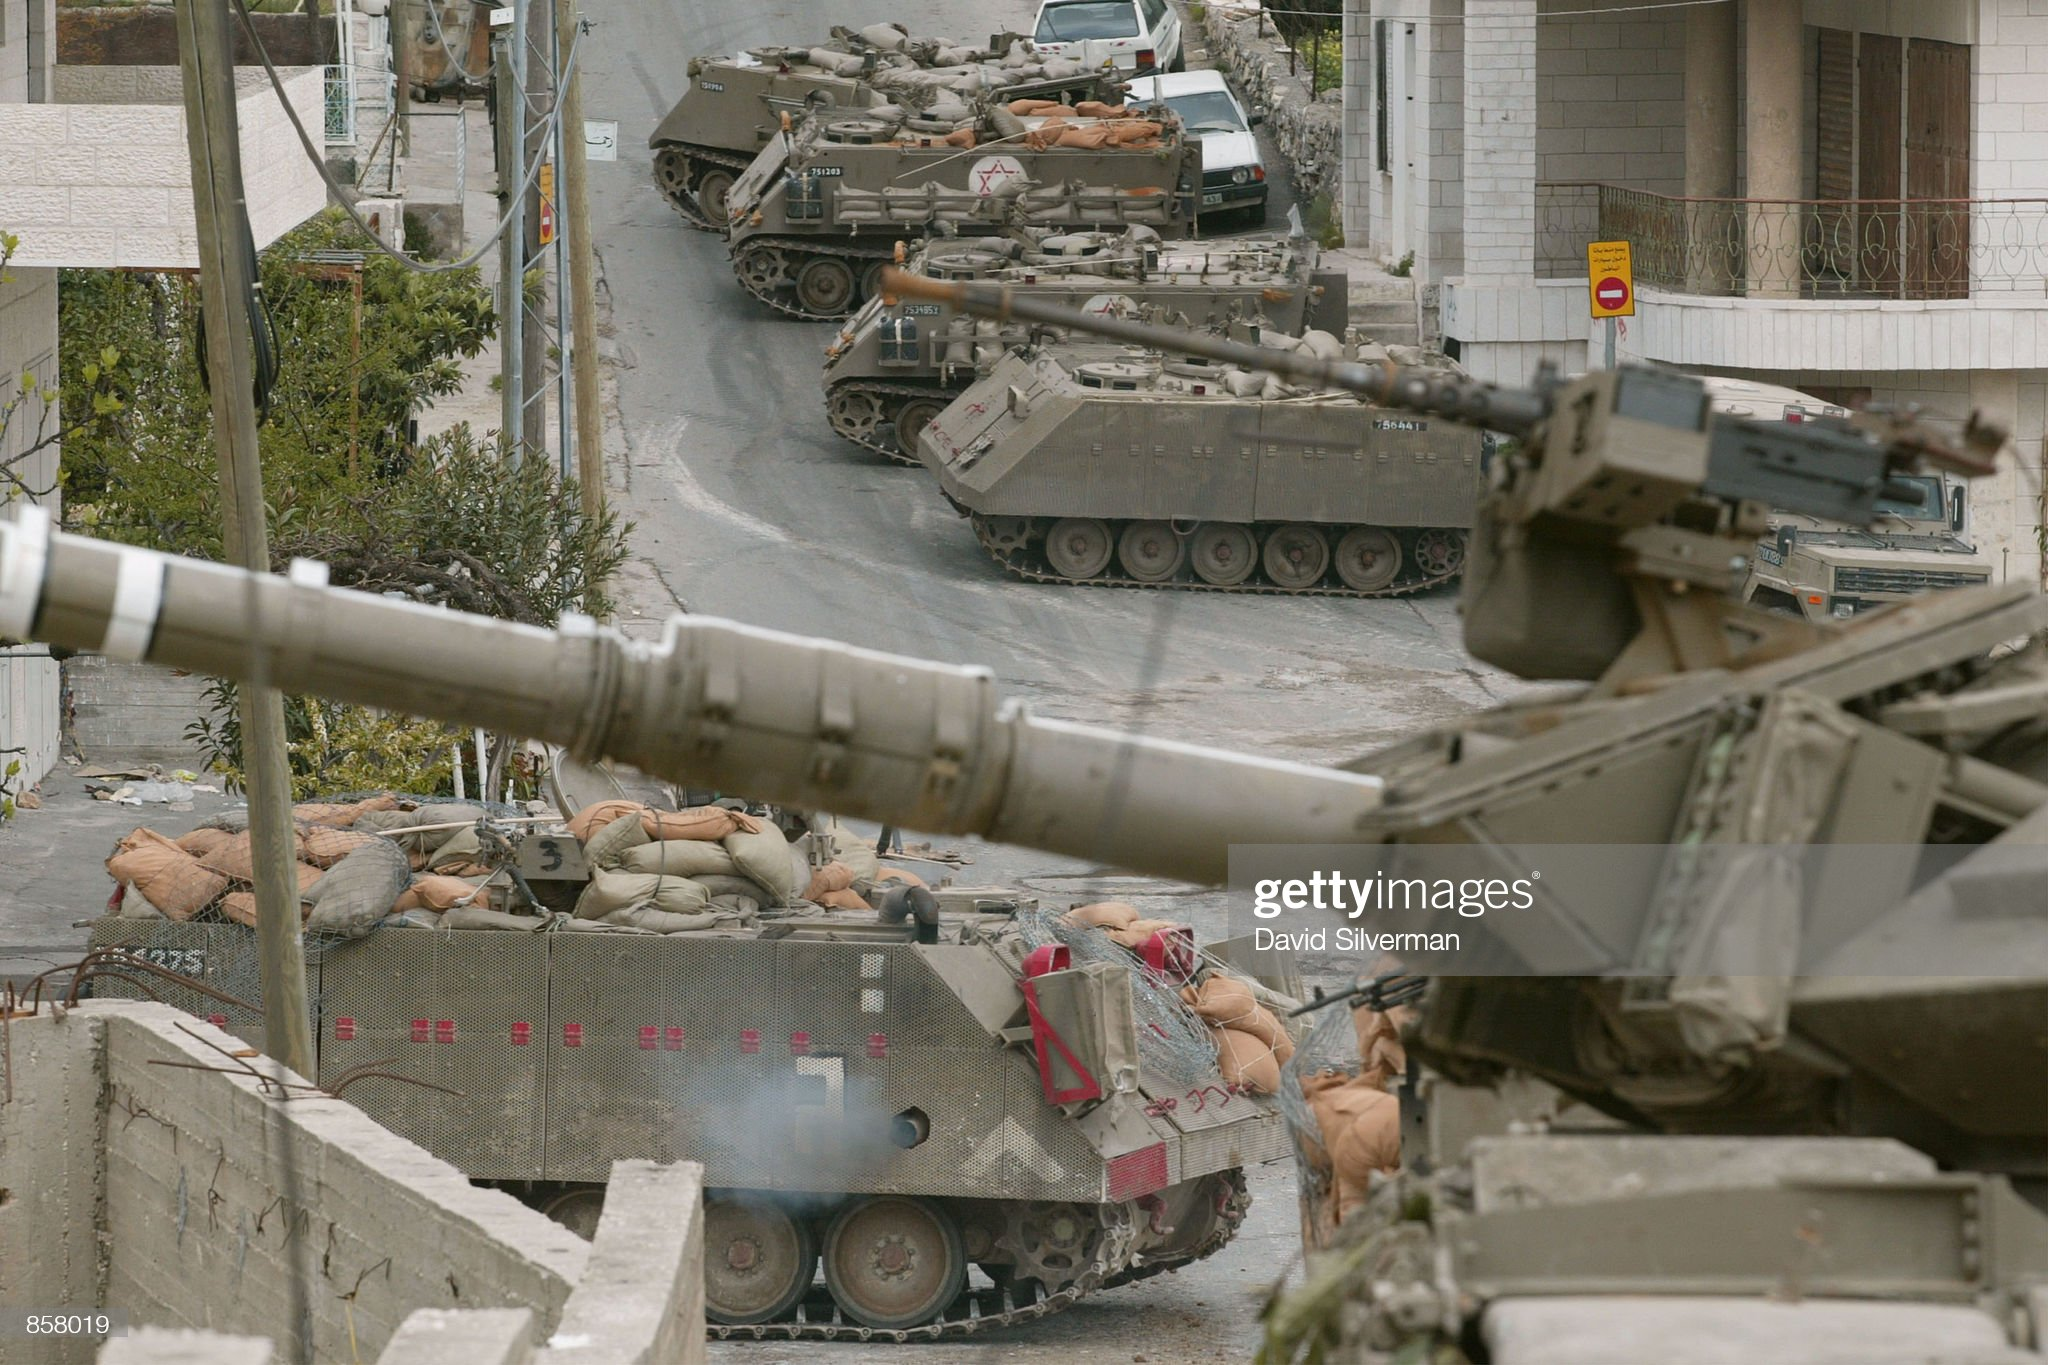 https://media.gettyimages.com/photos/an-israeli-army-tank-guards-the-head-of-an-armored-column-during-picture-id858019?s=2048x2048